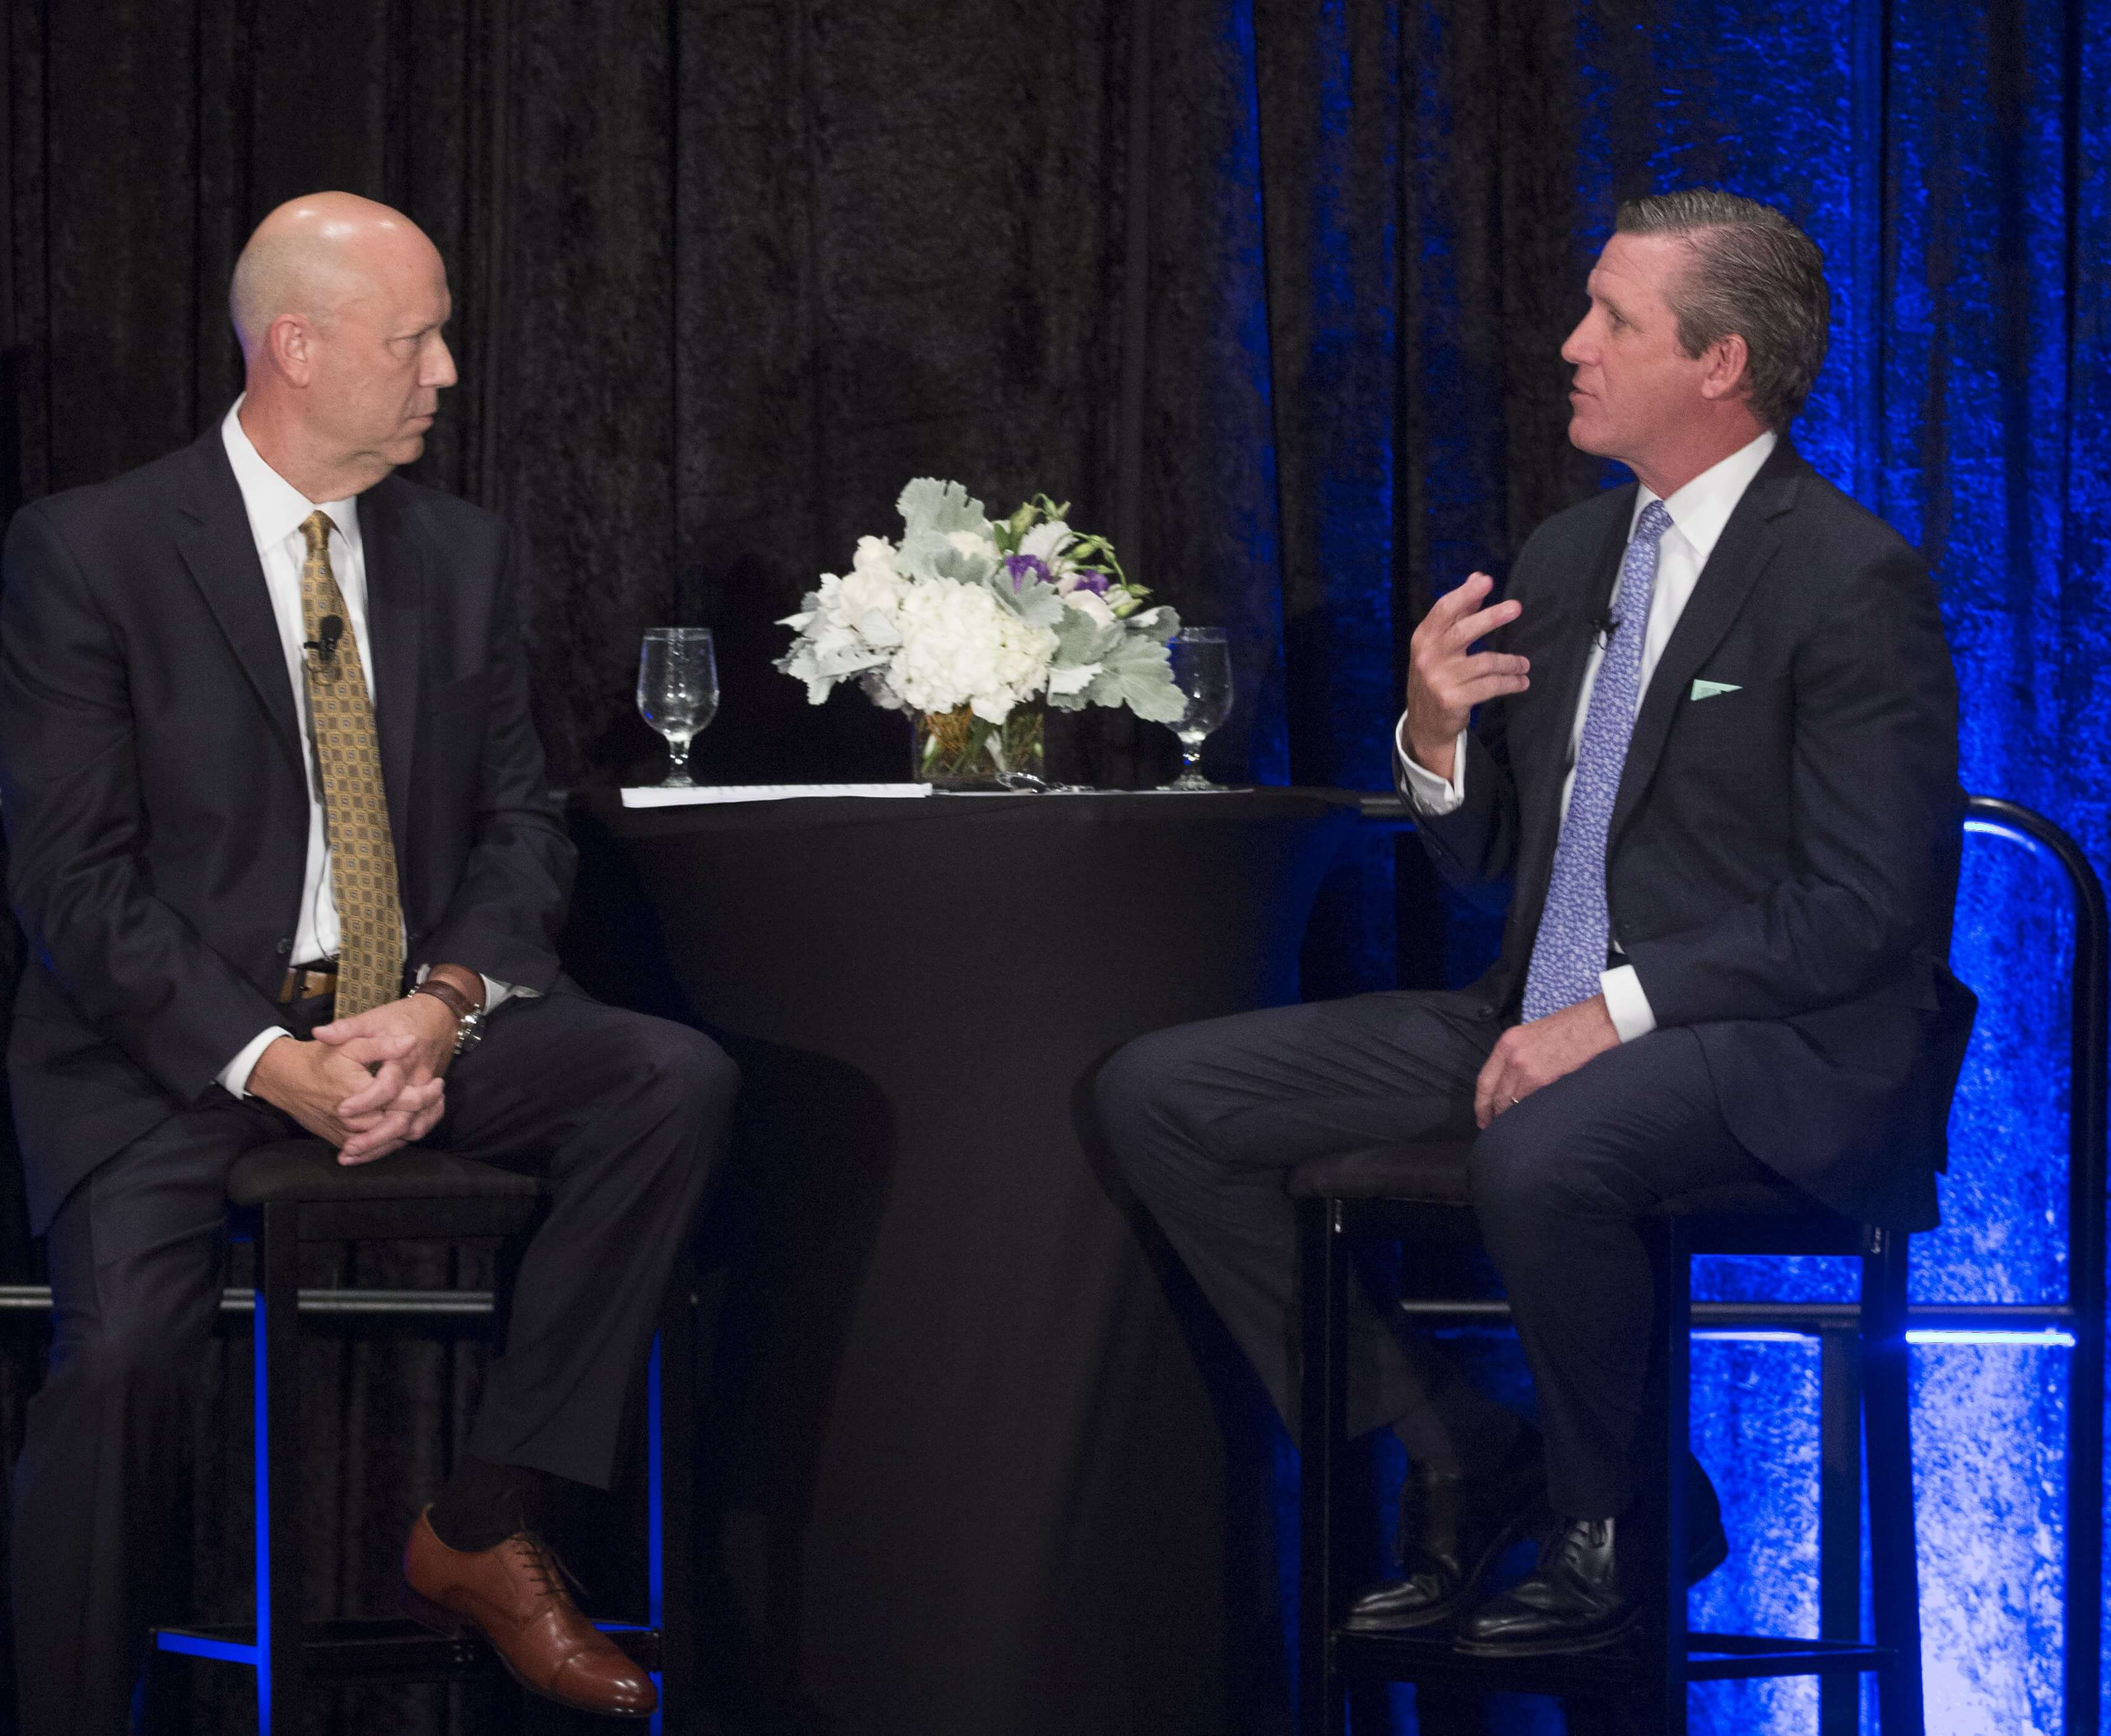 Houston Business Journal President and Publisher, Bob Charlet interviews Texas Medical Center President and CEO, William F. McKeon.